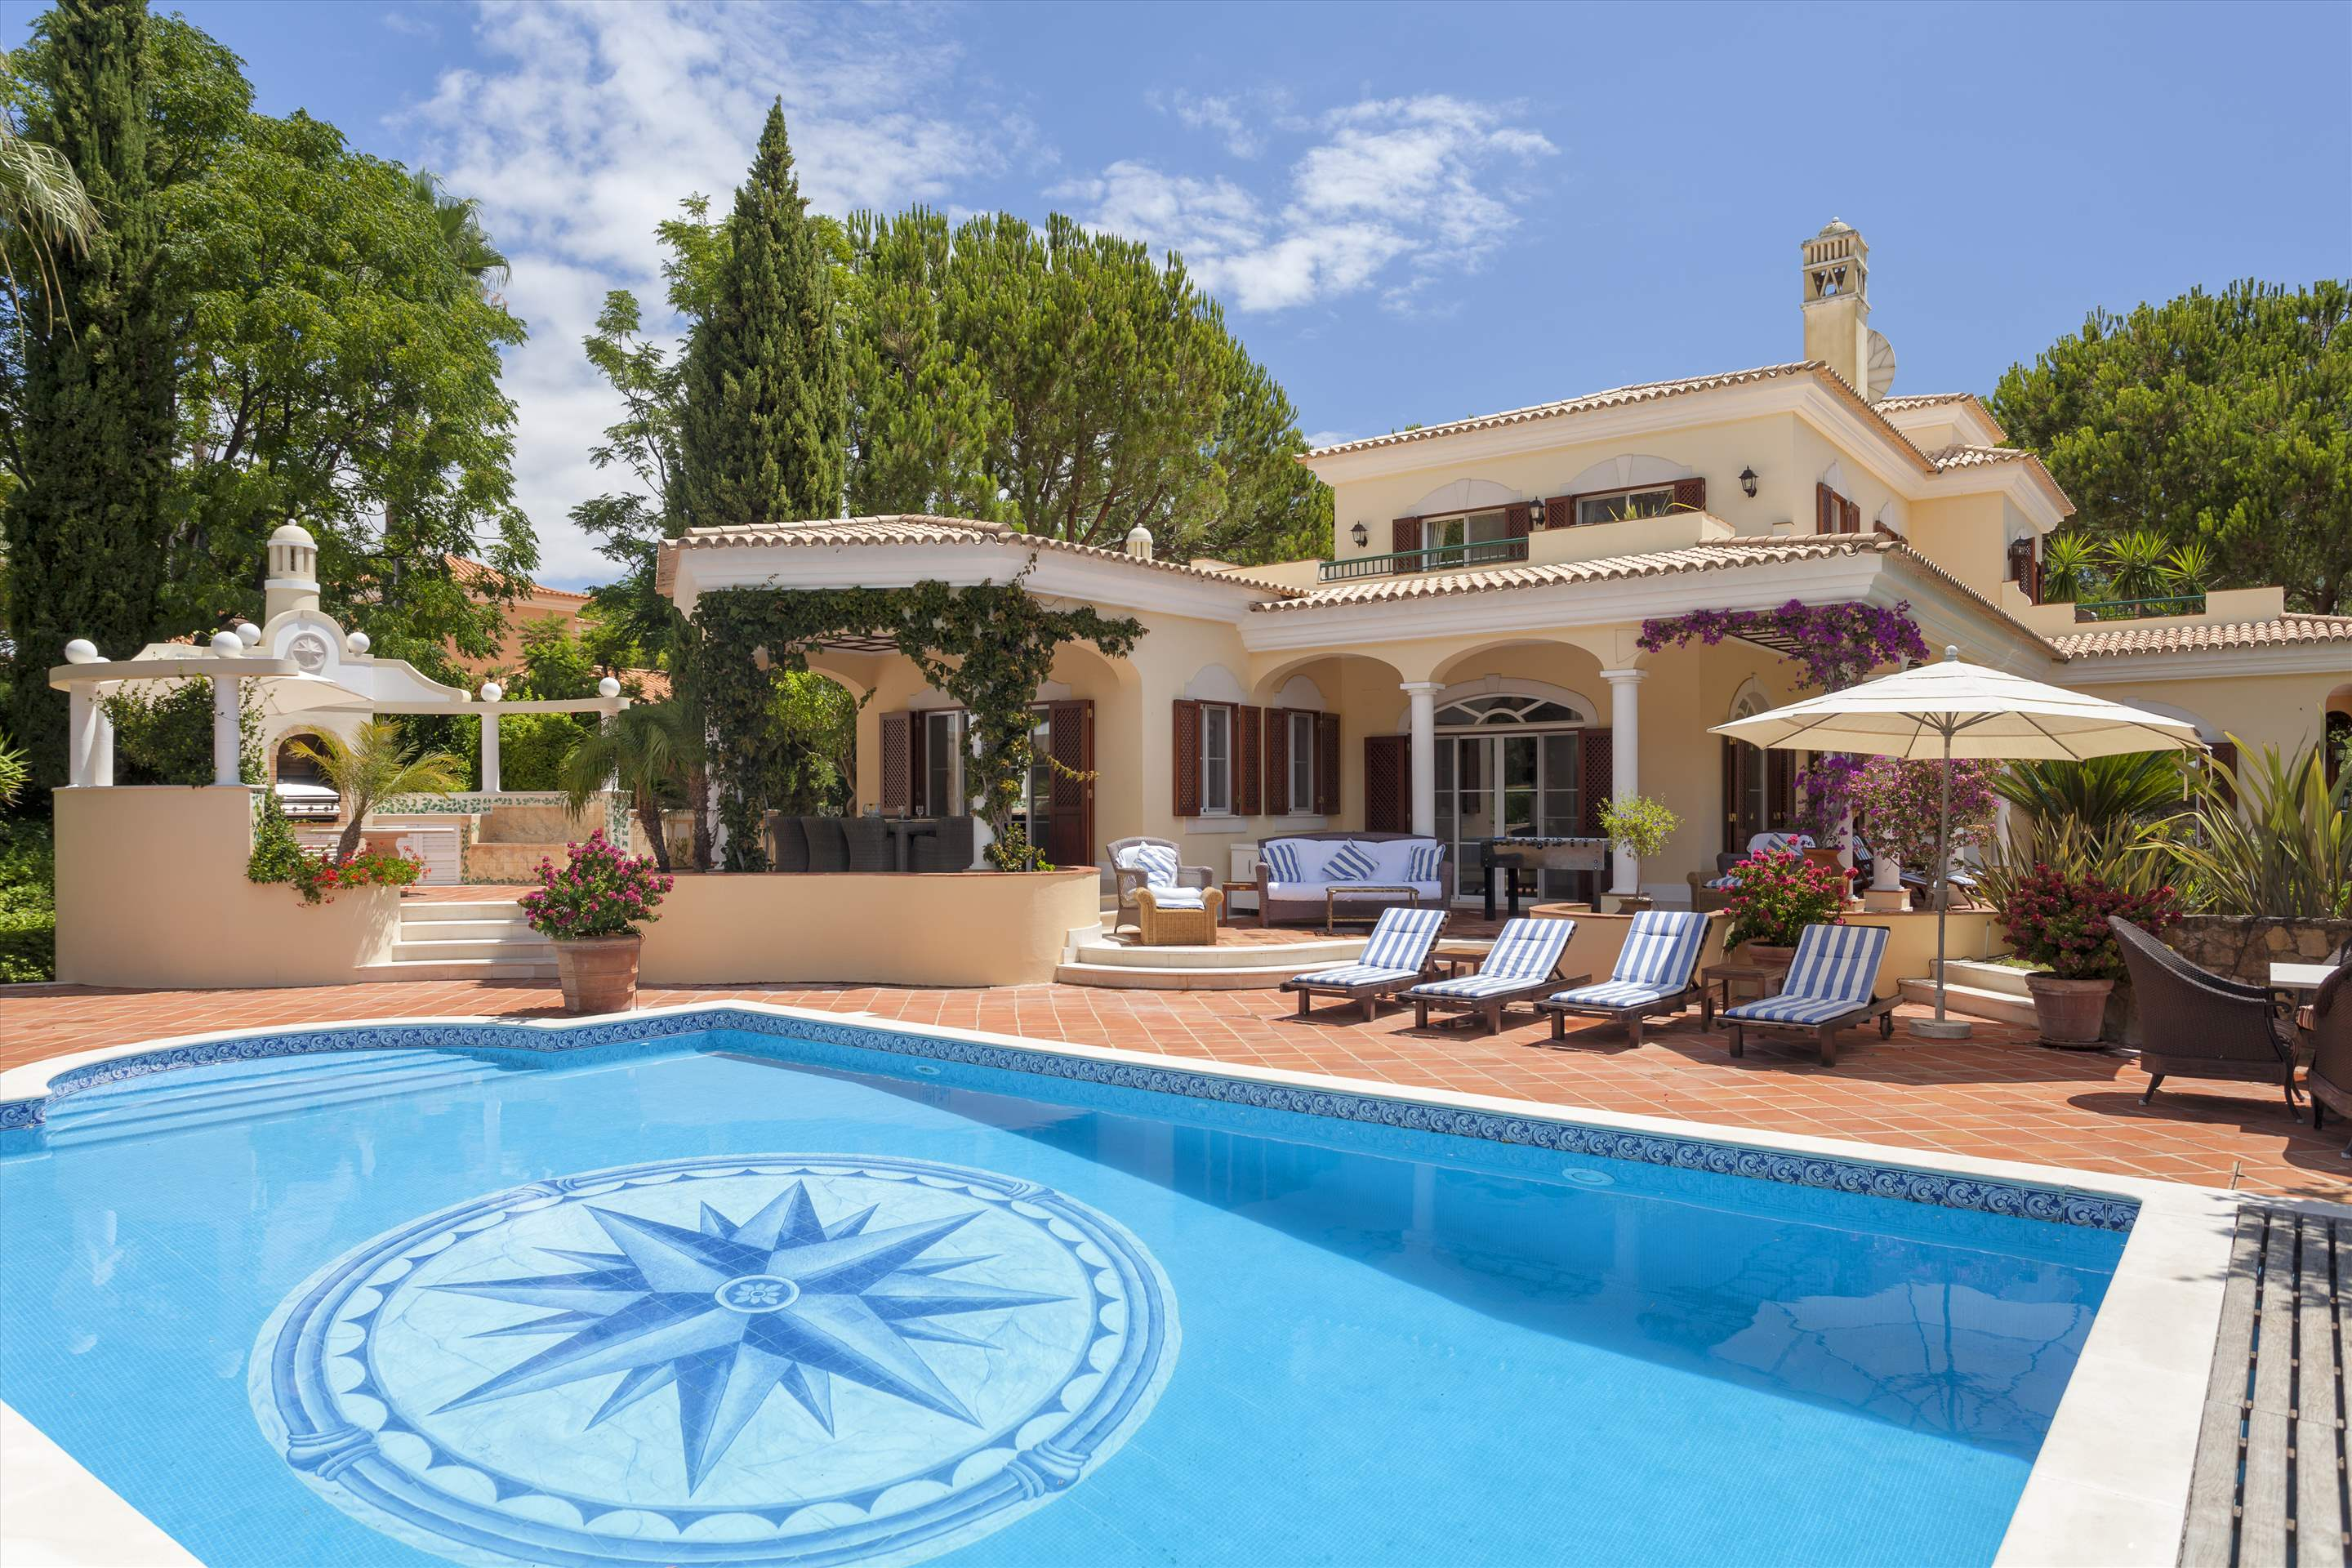 Villa Panache, 4 bedroom villa in Quinta do Lago, Algarve